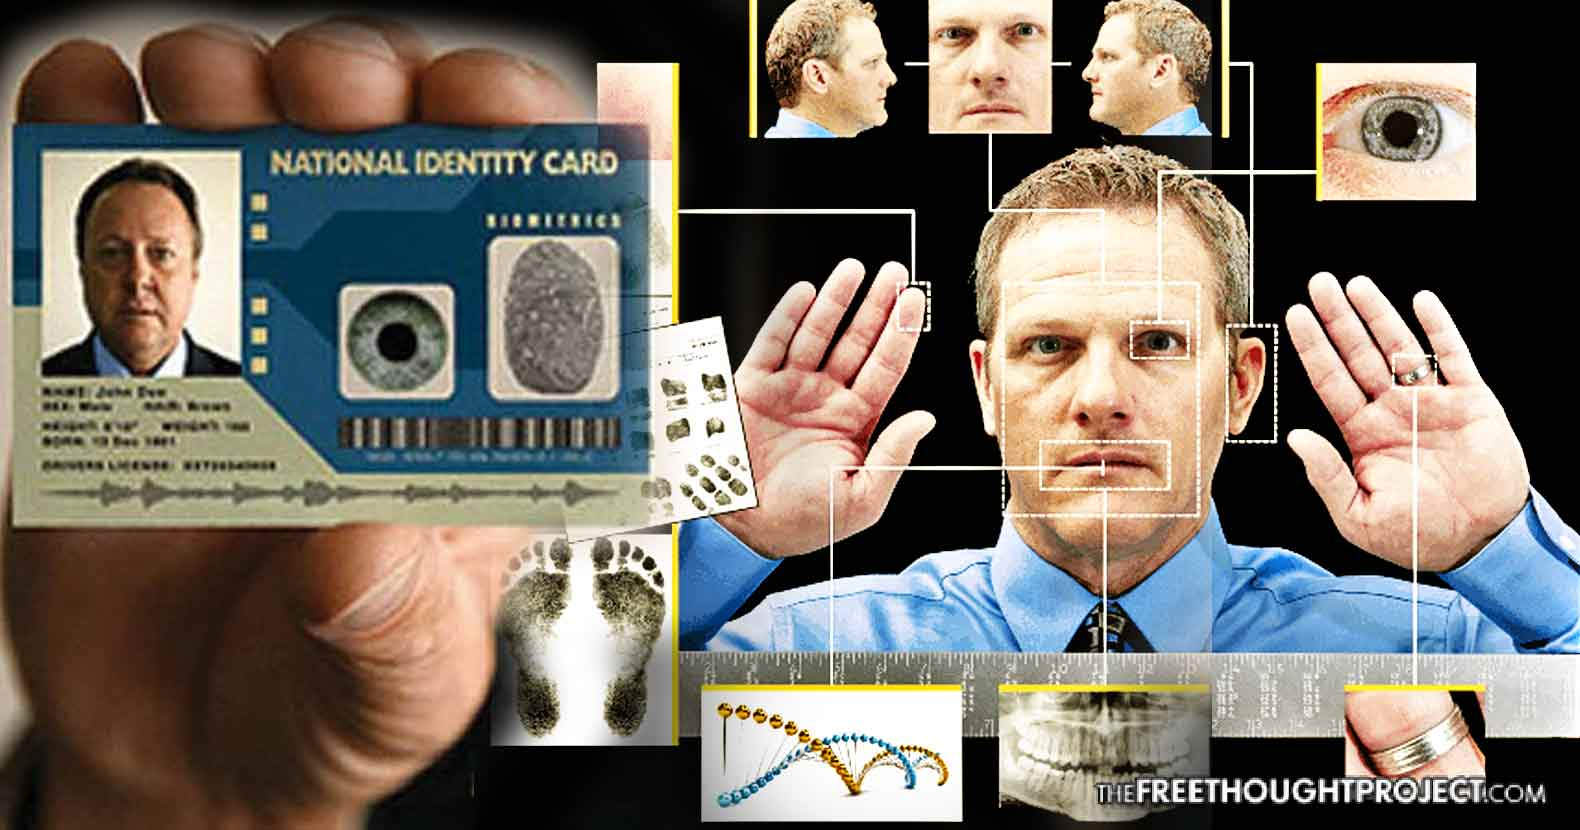 Congress Quietly Pushing Bill to Require National Biometric ID for 'ALL Americans'